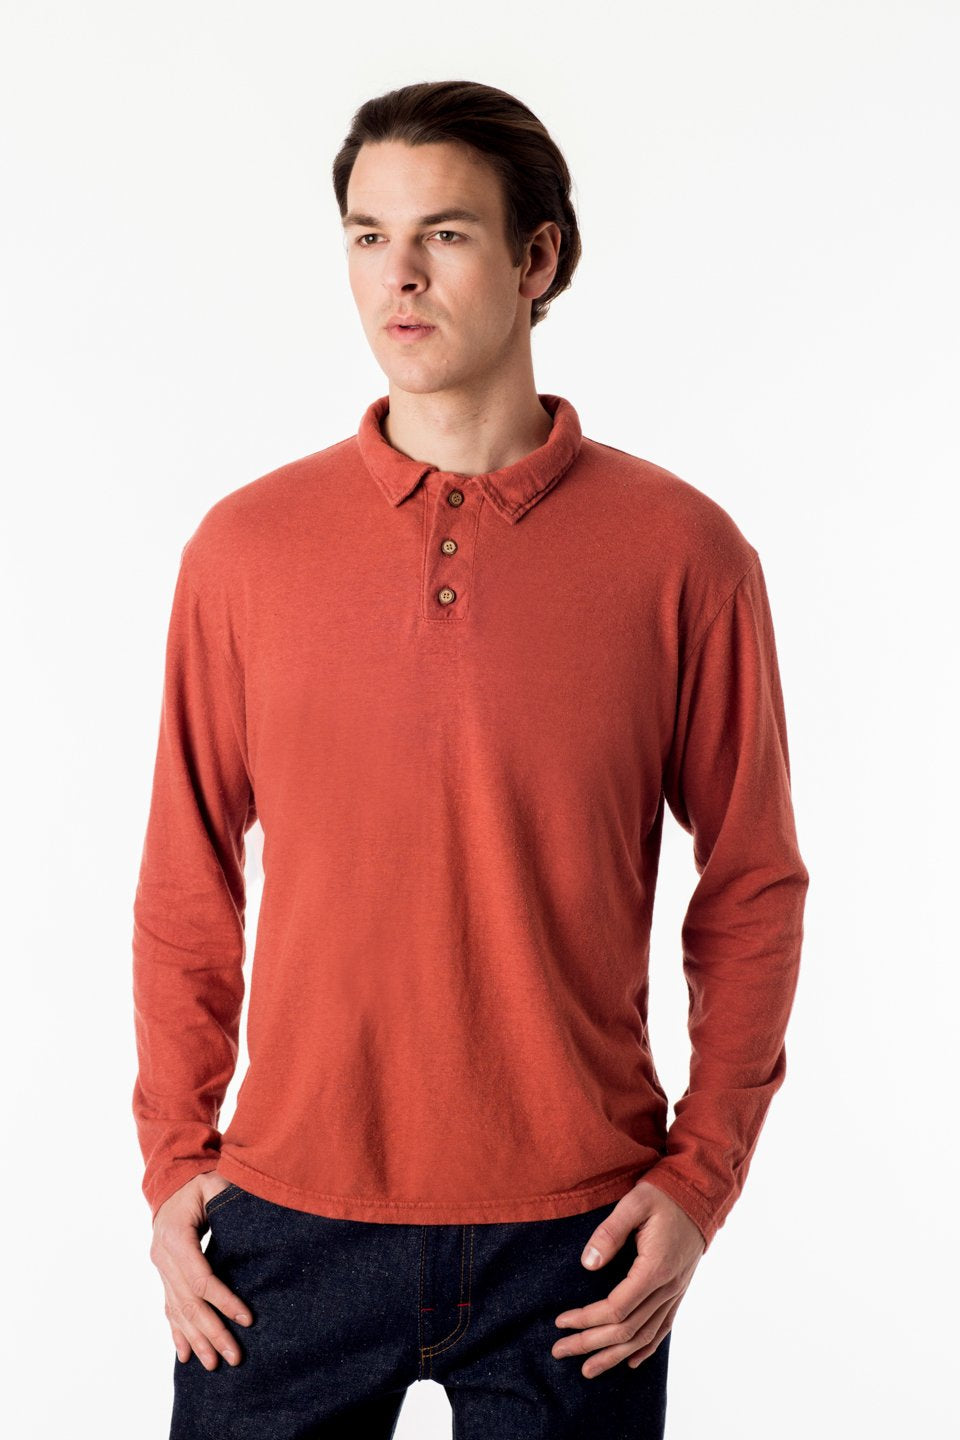 mens polo long sleeve shirt with three button closure at the neck, short collar and long sleeves in a light orange